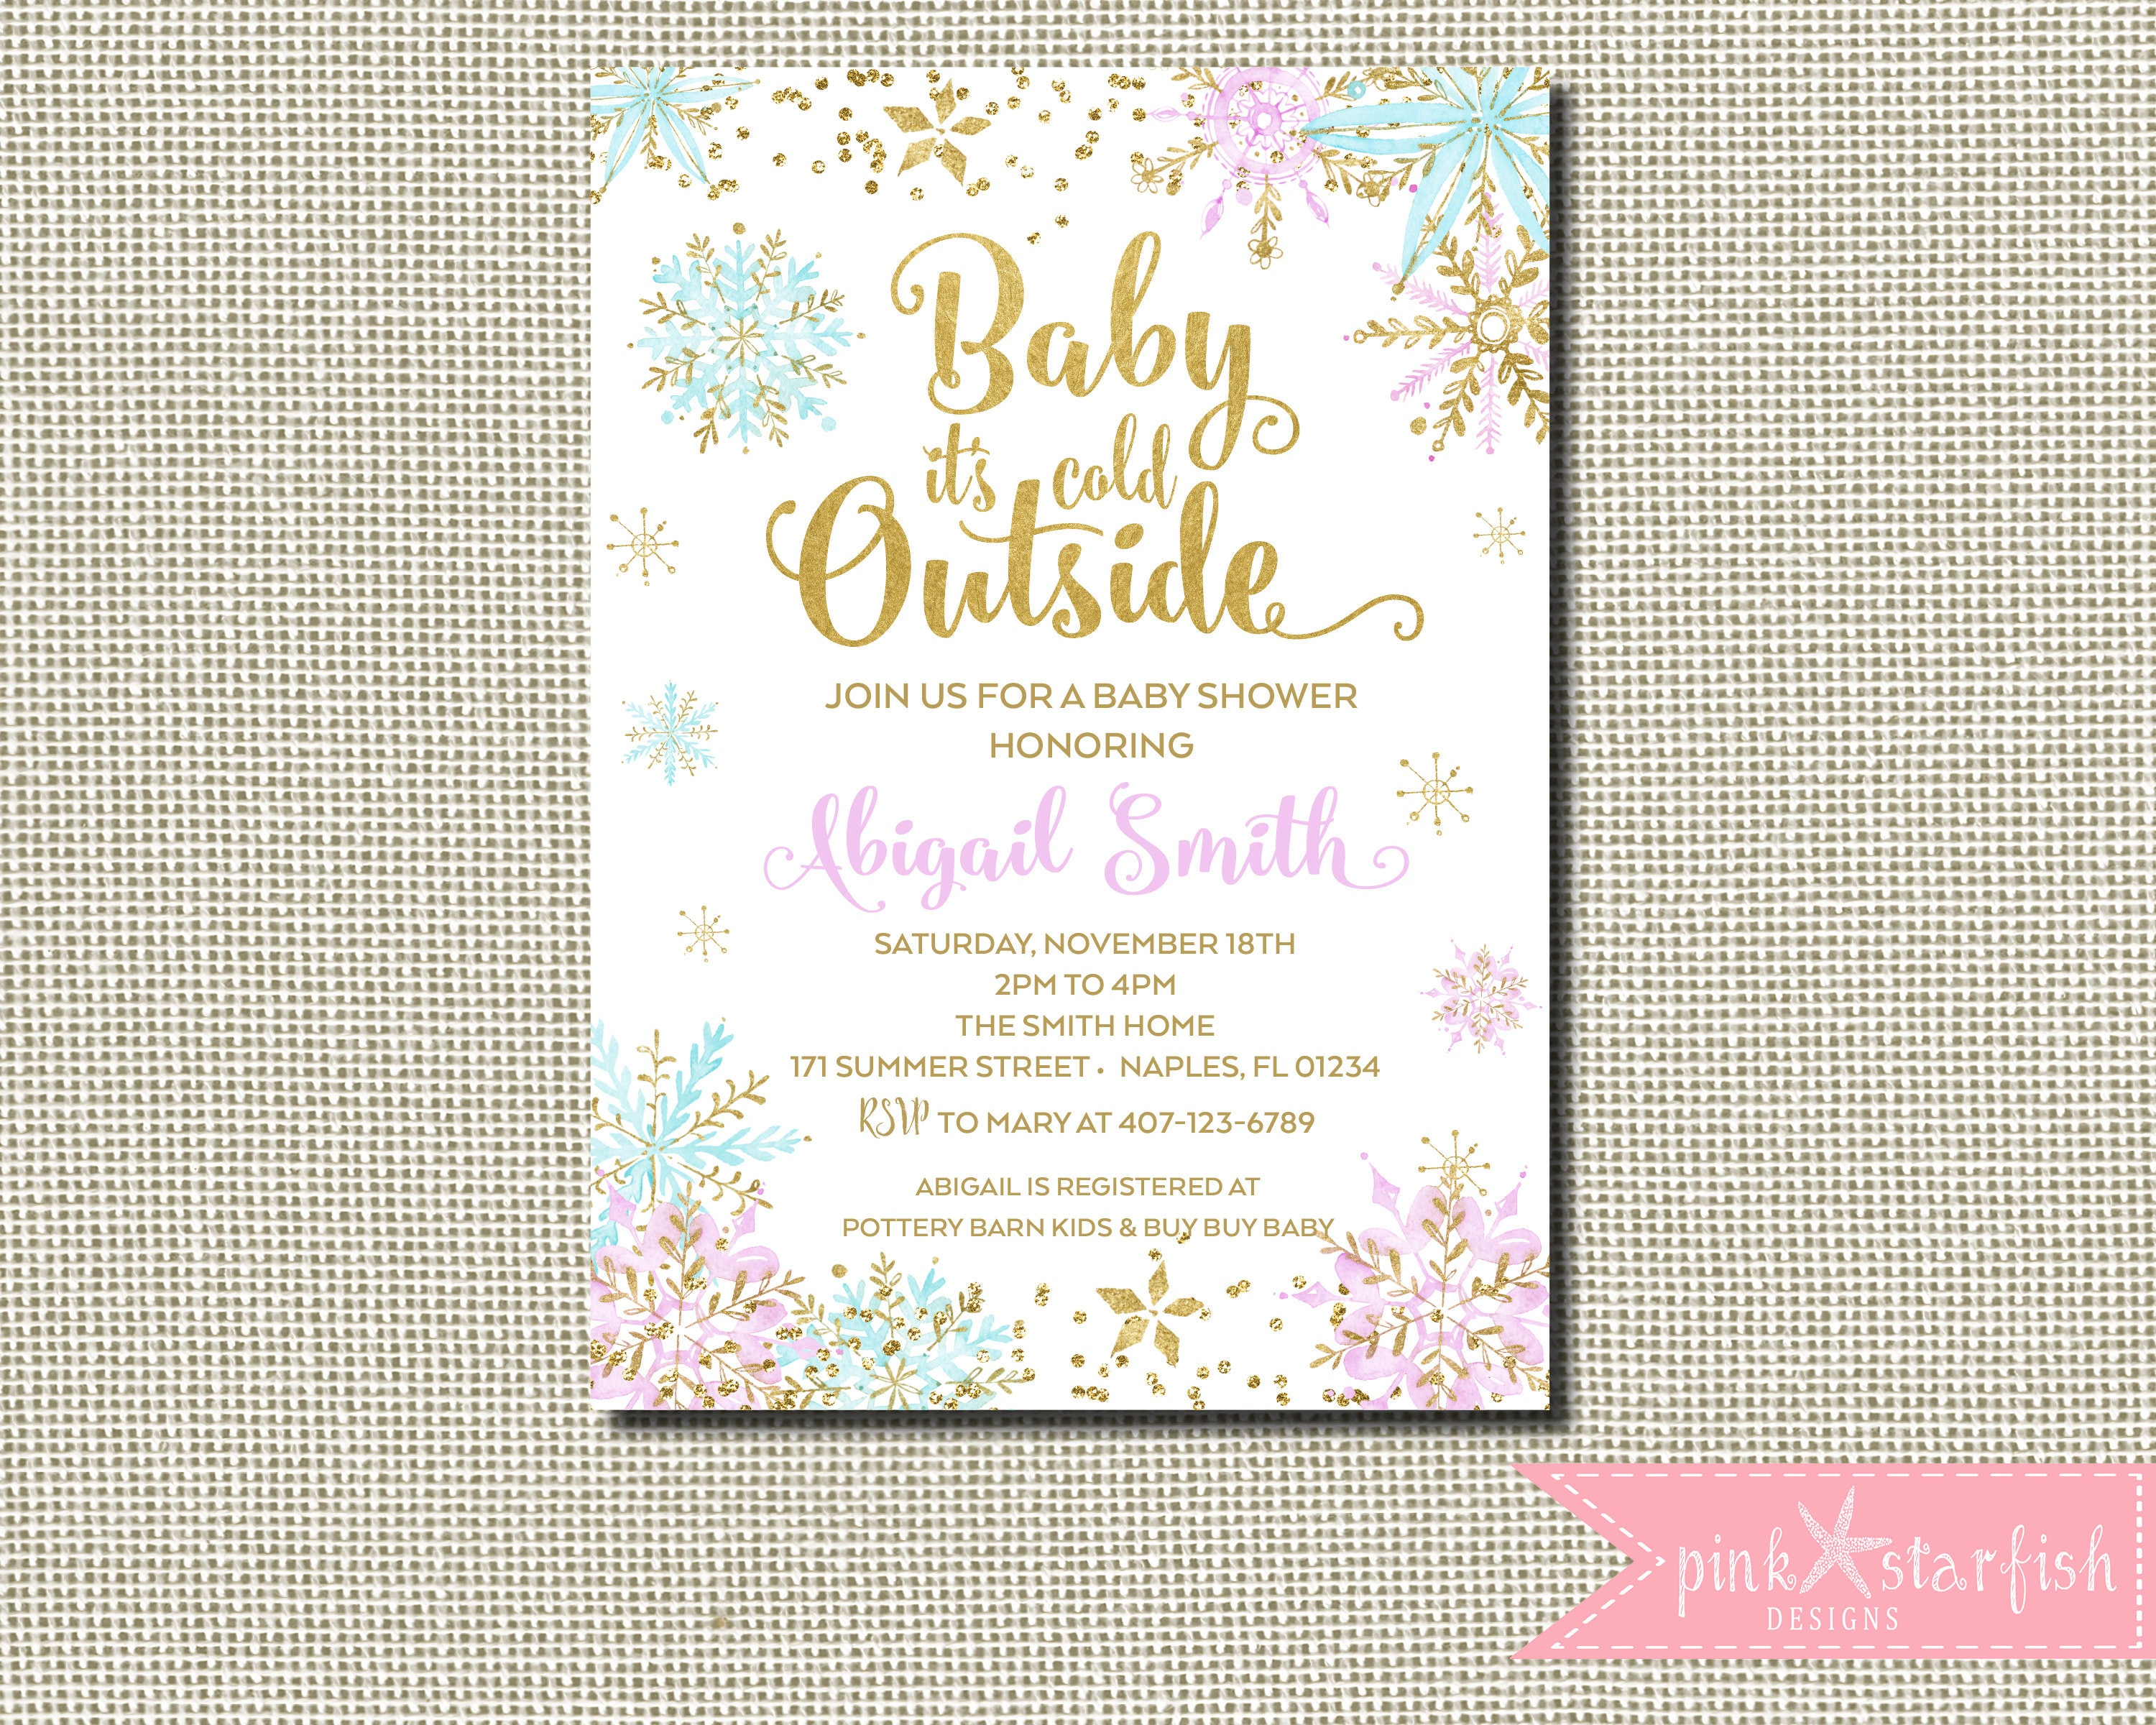 Winter Wonderland Baby Shower Baby Shower Invitation